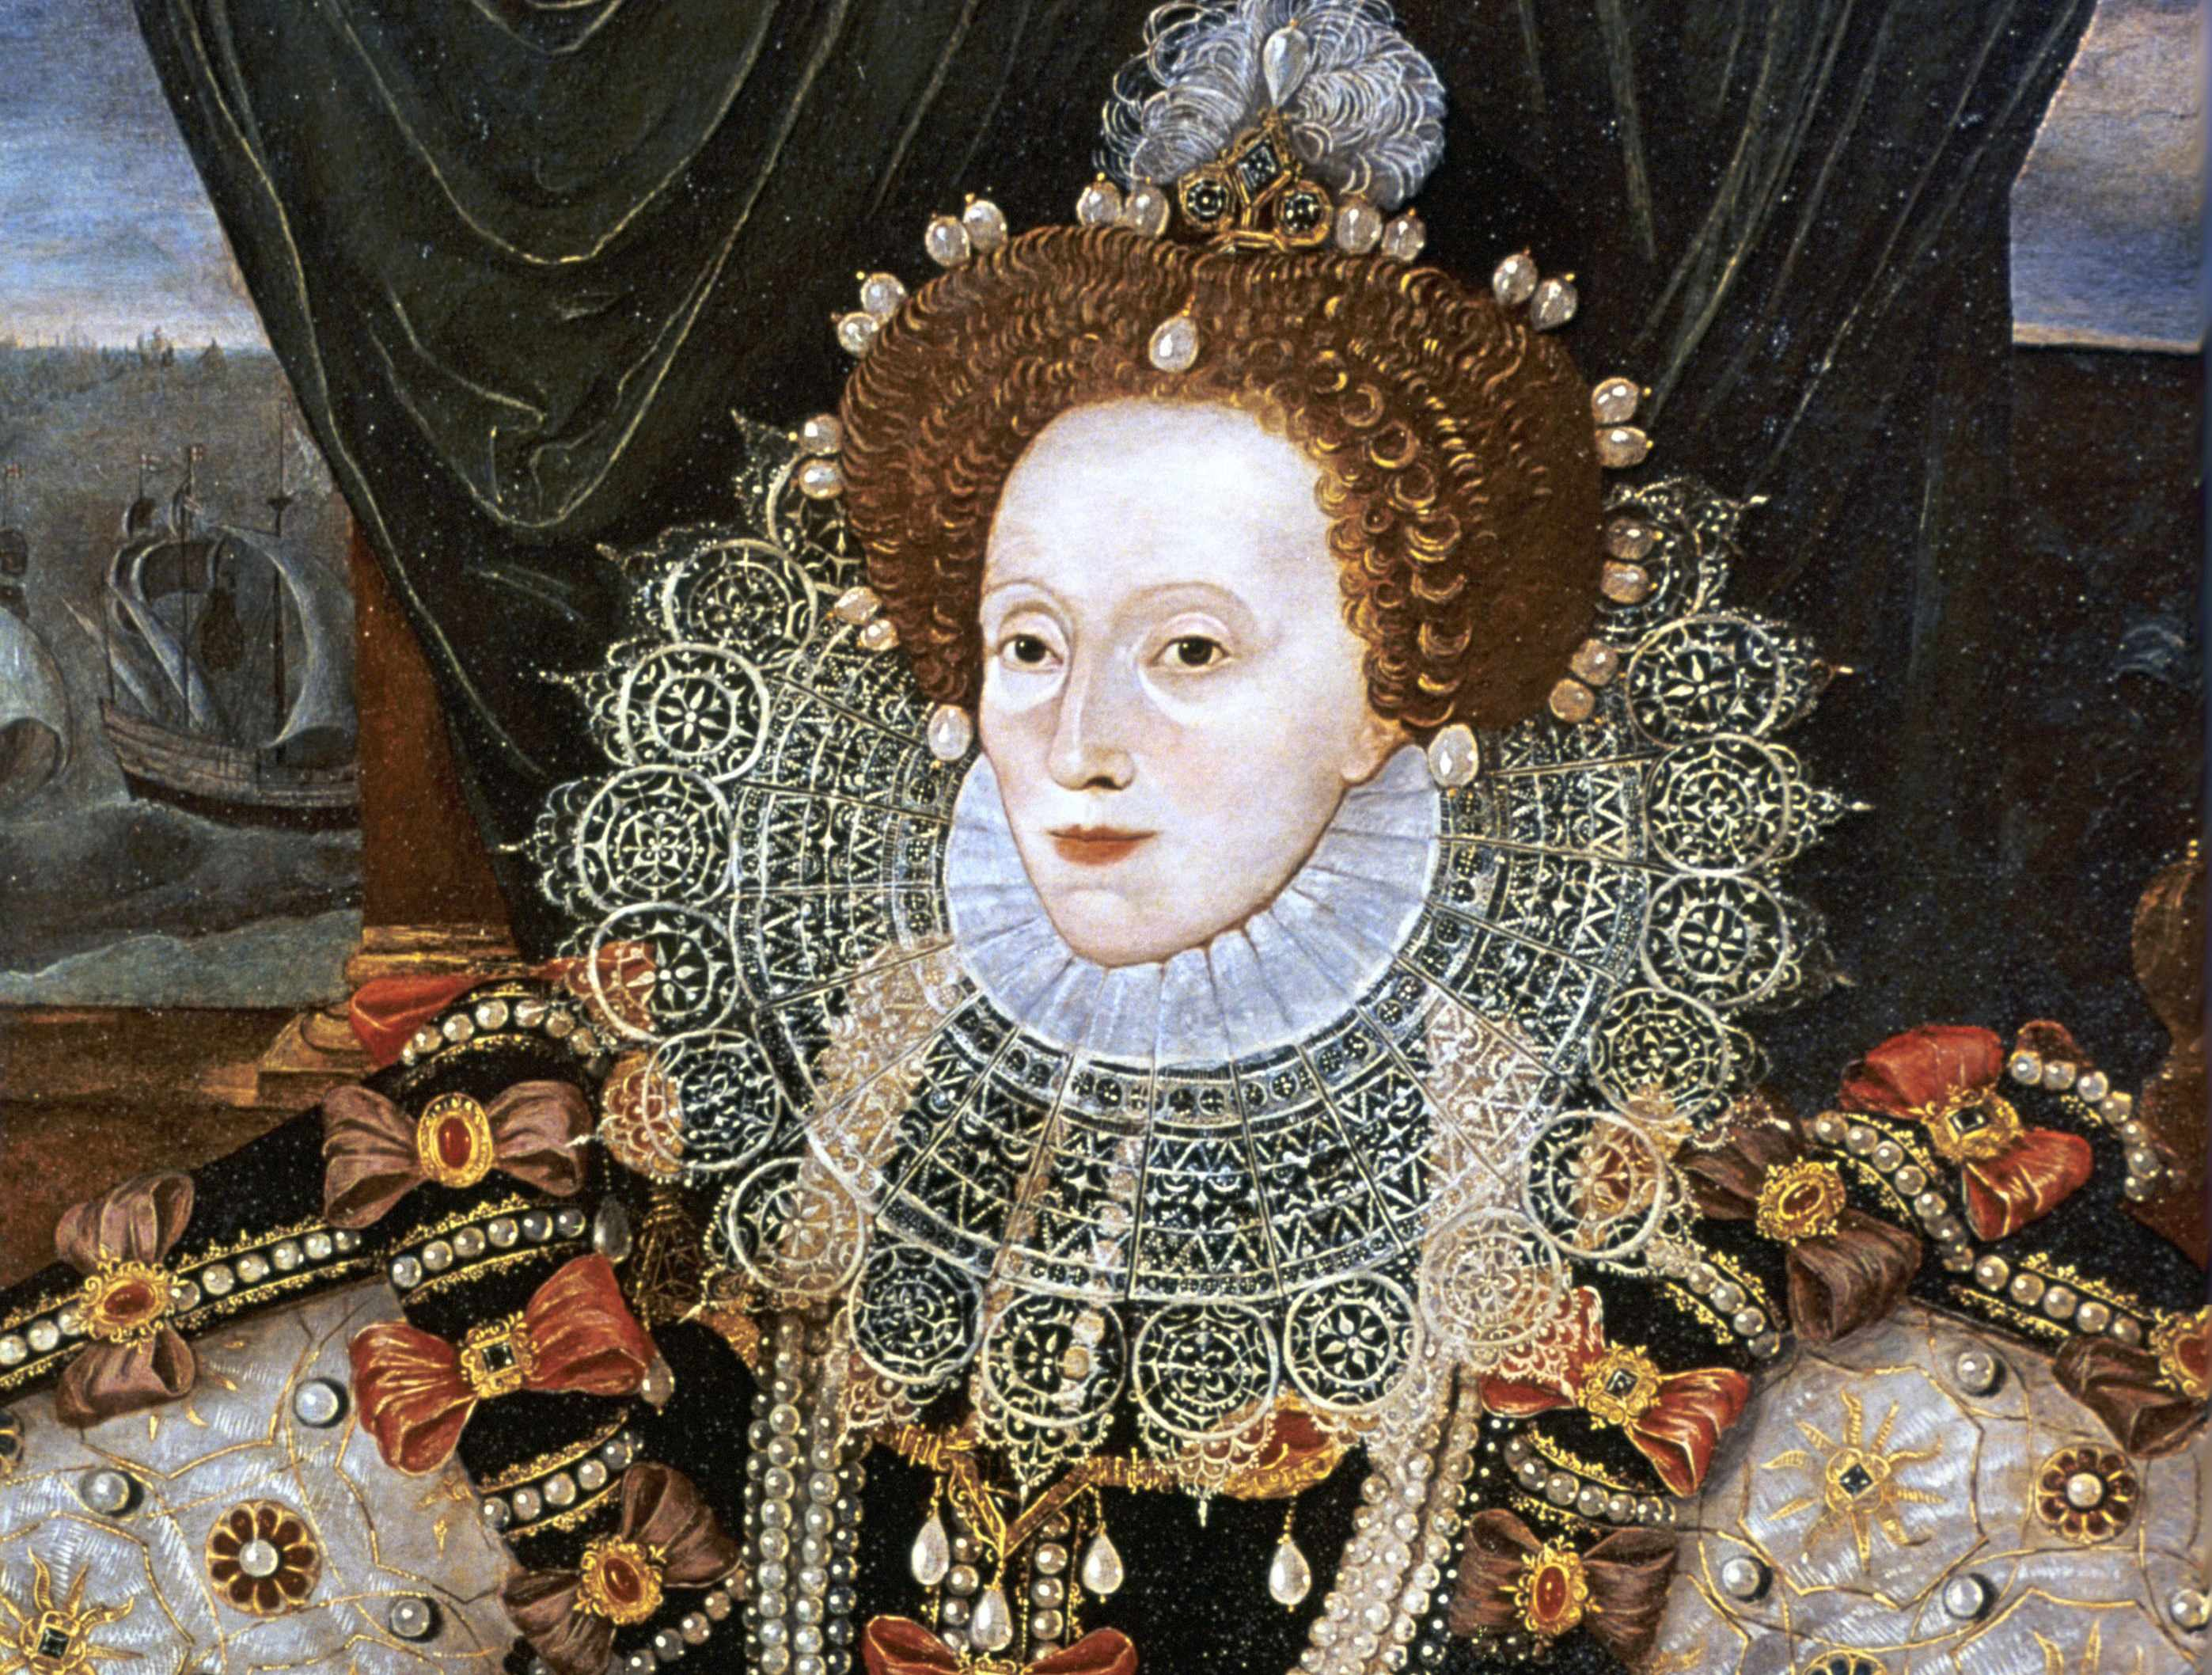 Elizabeth I, shown in a portrait commemorating victory over the Armada. (Photo by: Photo 12/UIG via Getty Images)